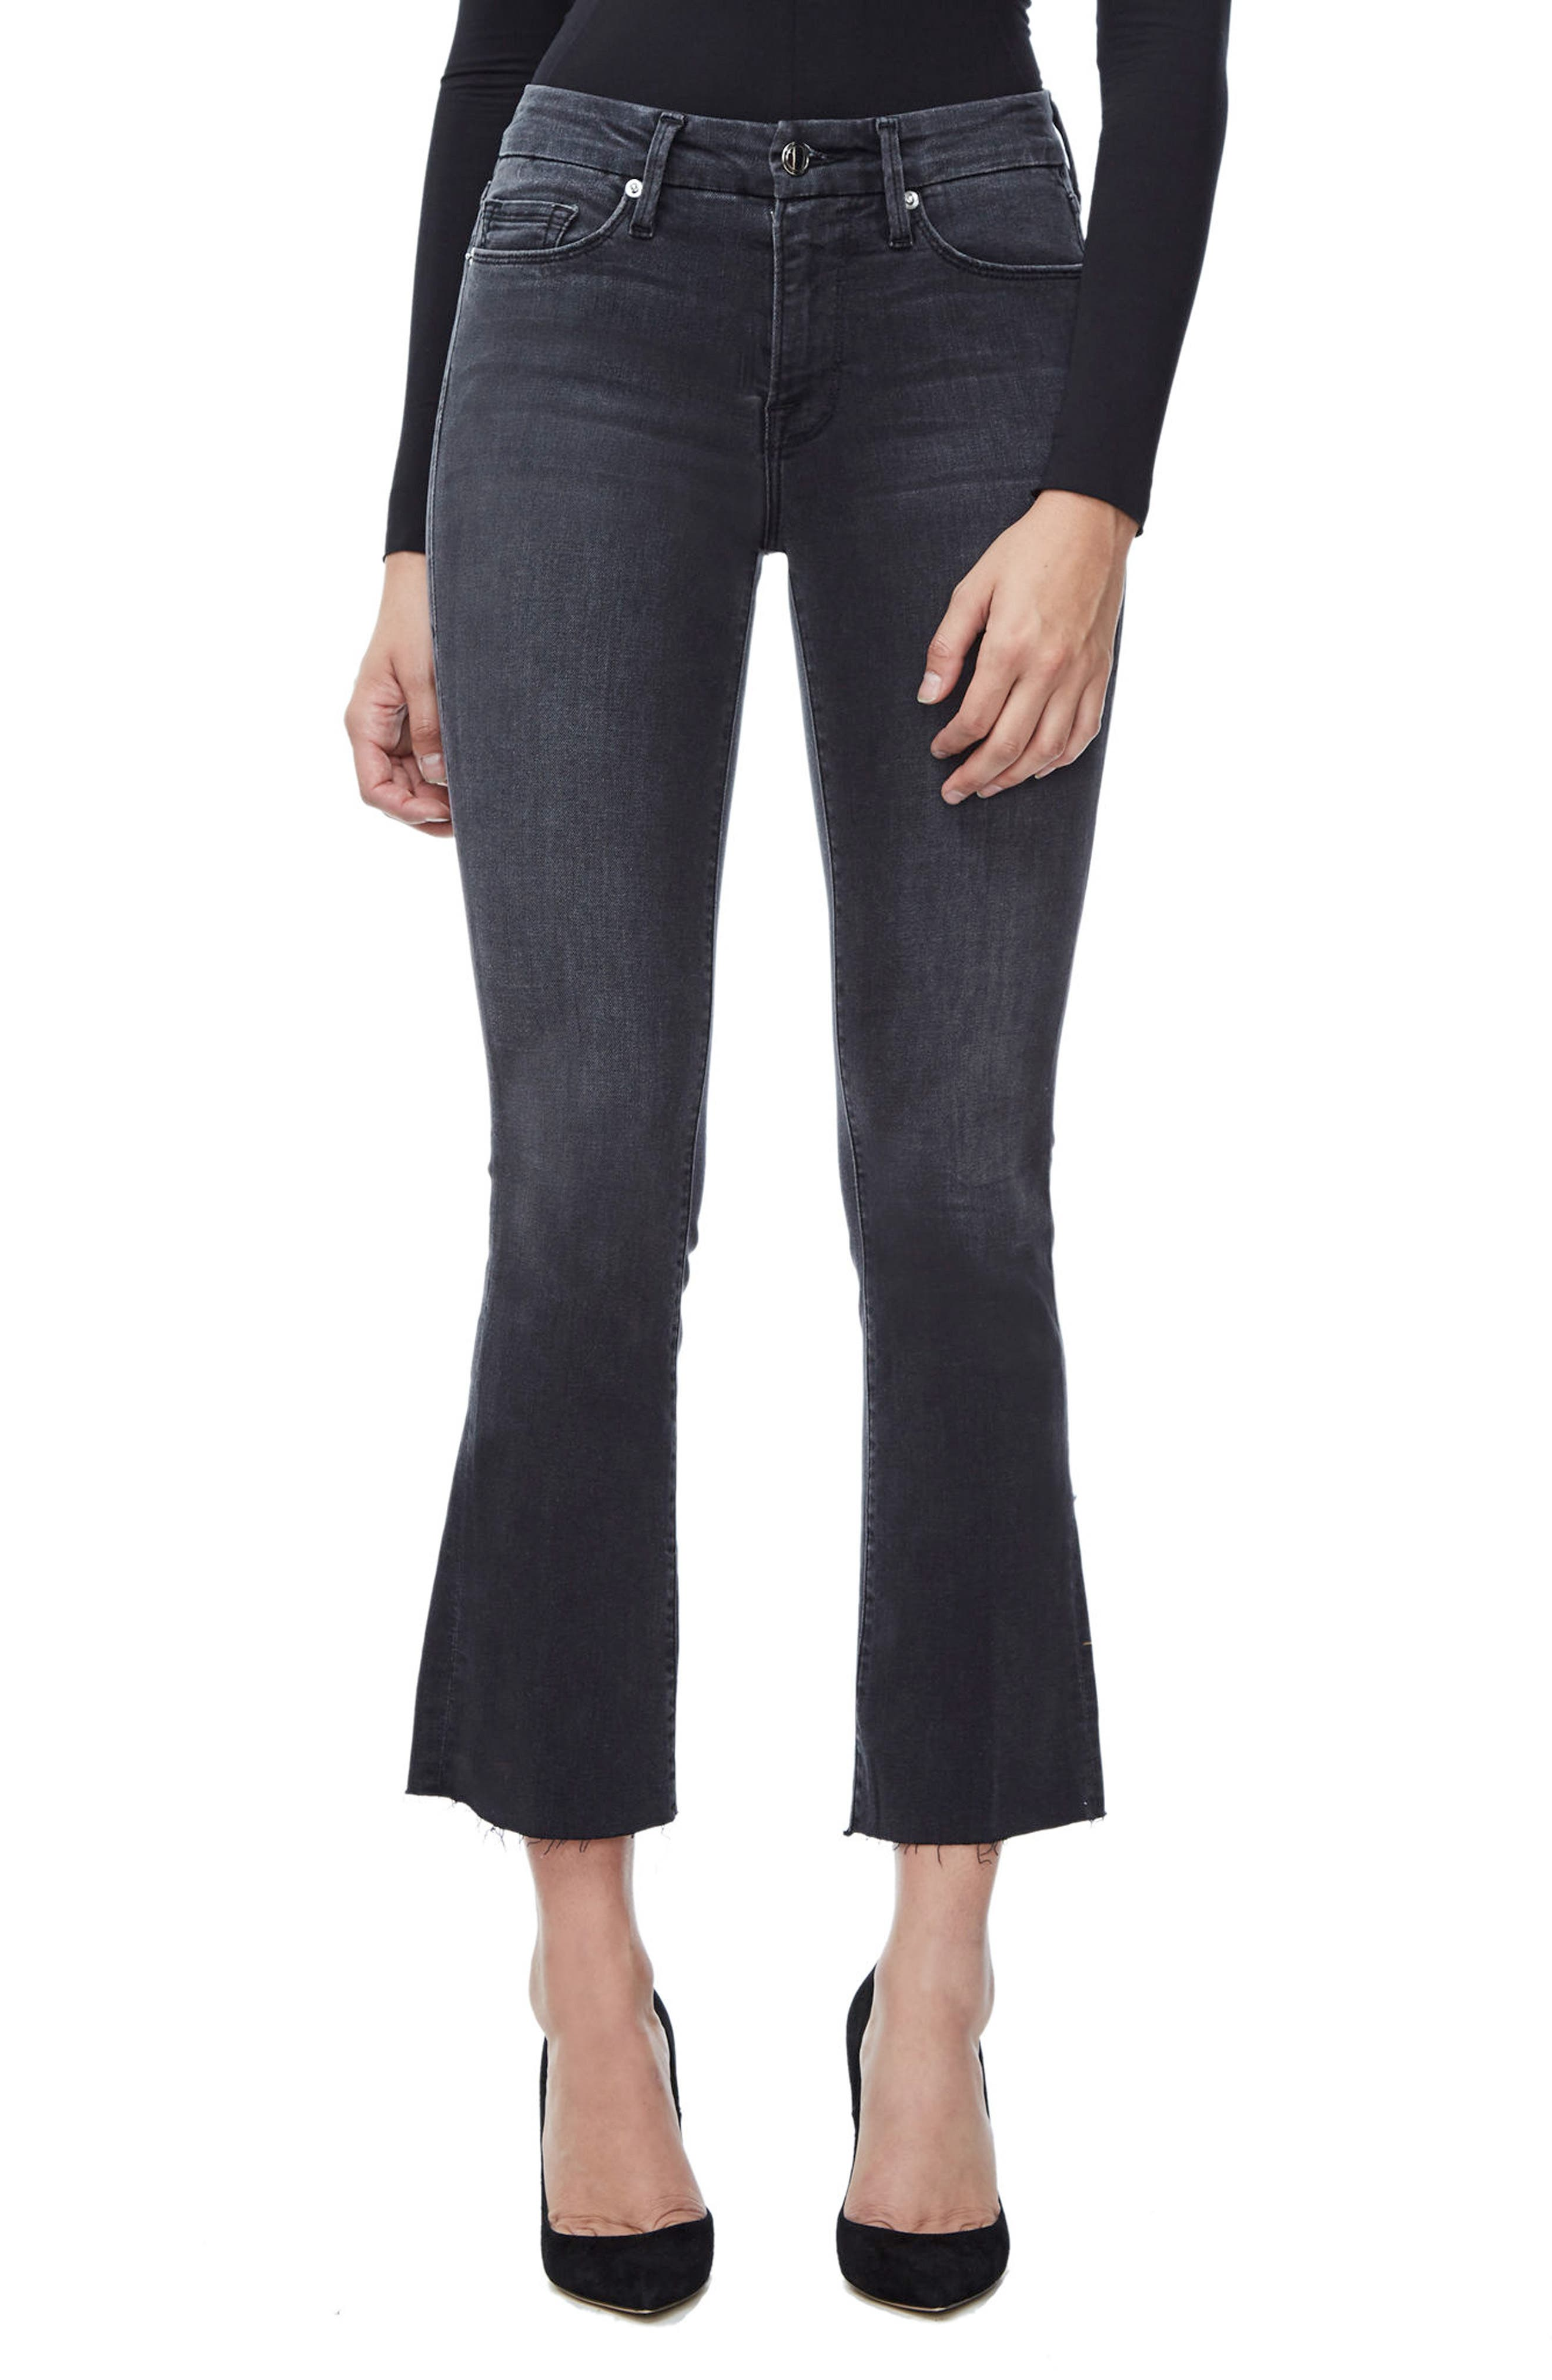 Alternate Image 1 Selected - Good American Good Boot Crop Bootcut Jeans (Black 008) (Regular & Plus Size)